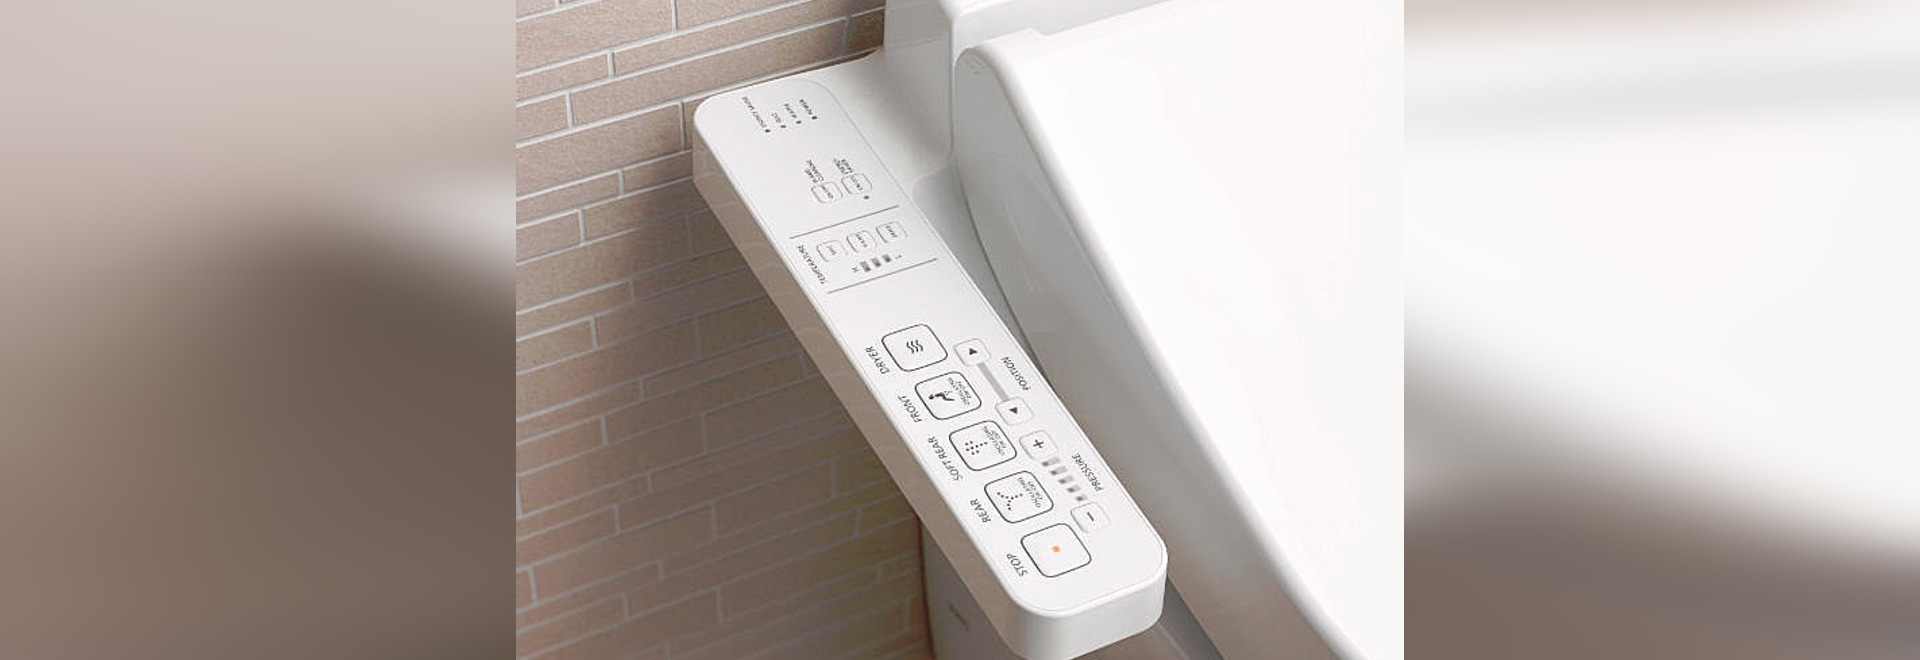 toto at ish new washlet features